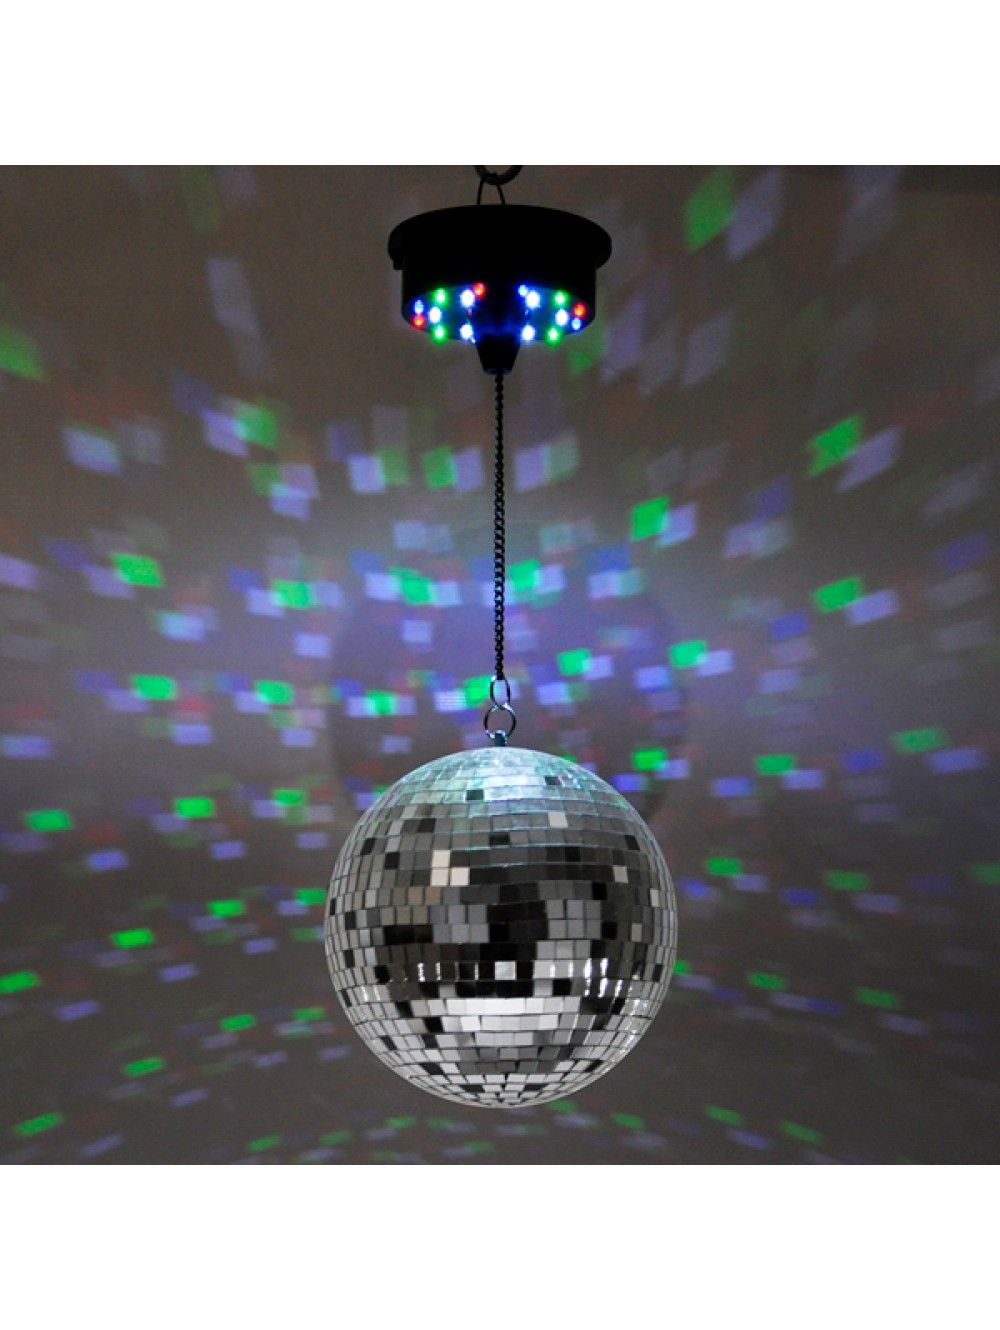 Rotating disco mirror ball ceiling light my party pinterest rotating disco mirror ball ceiling light aloadofball Image collections